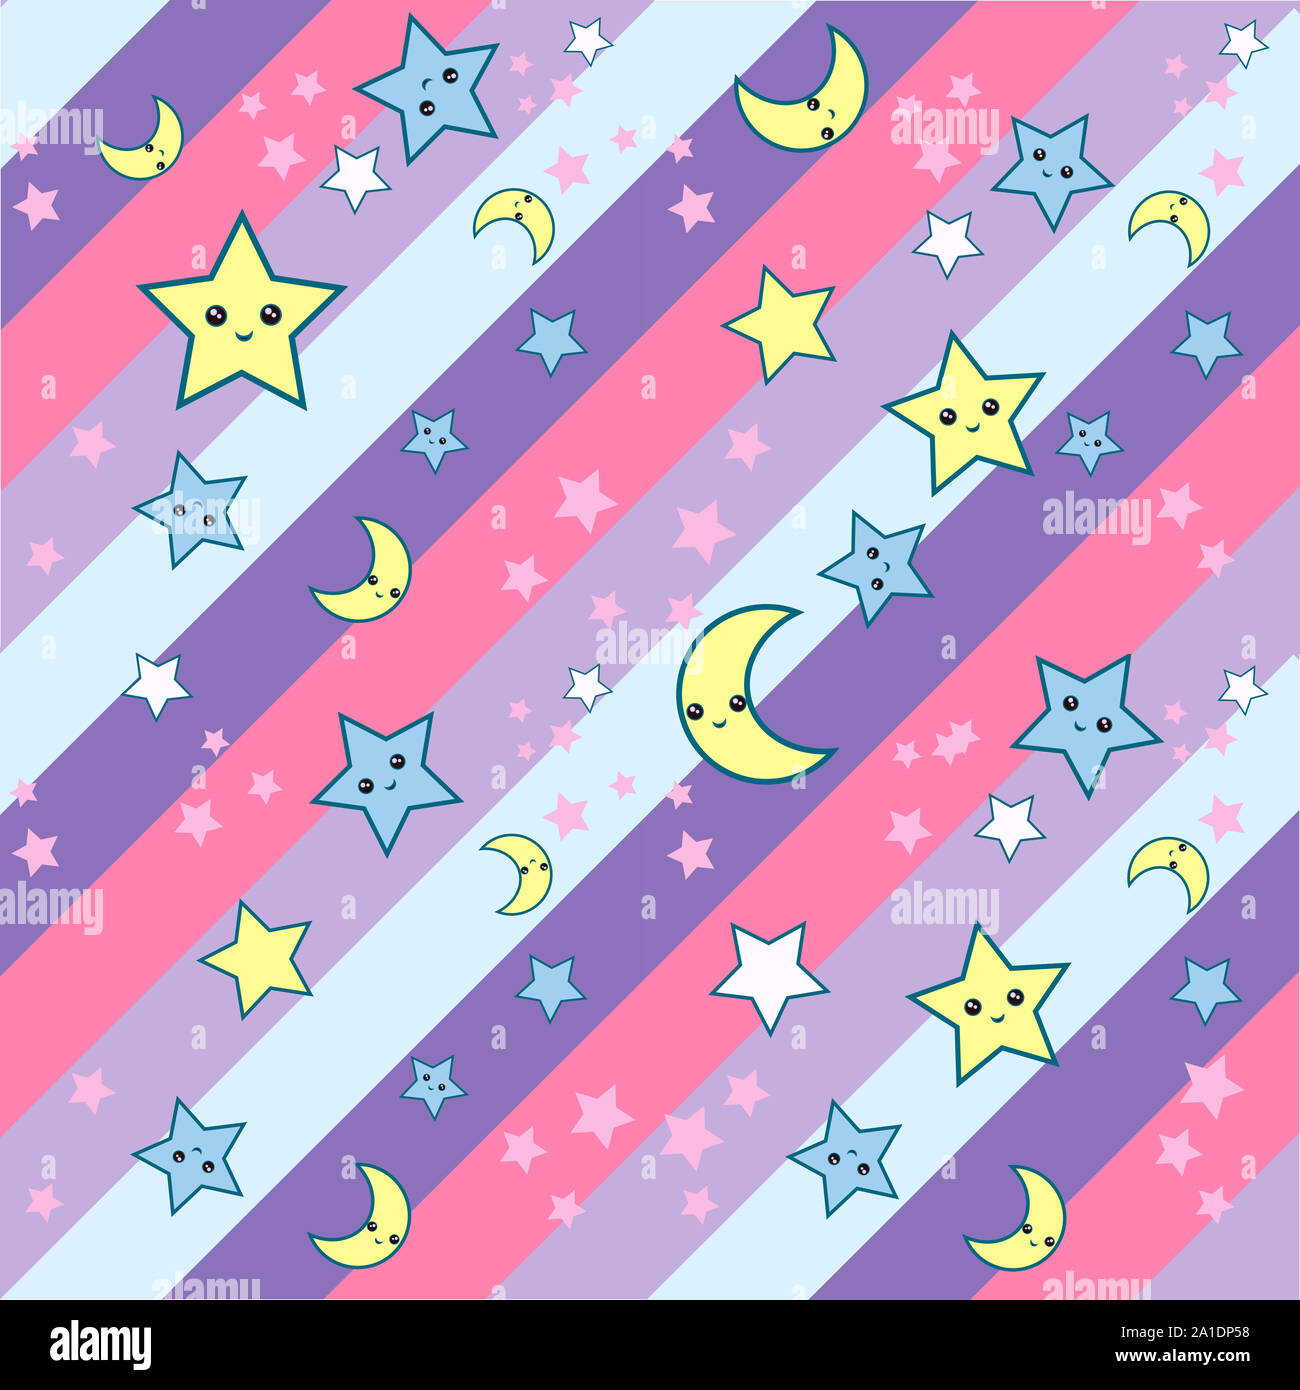 Seamless pattern with cartoon stars and moon cute kawaii muzzles in diagonal stripes back ground. can be used for fabric, wallpaper, stationery, packa Stock Photo